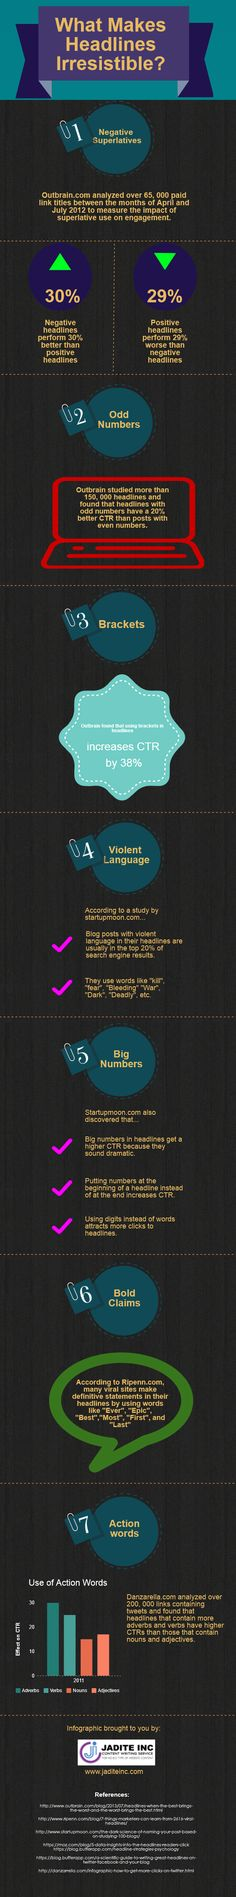 7 Components for Writing Killer Headlines - an infographic